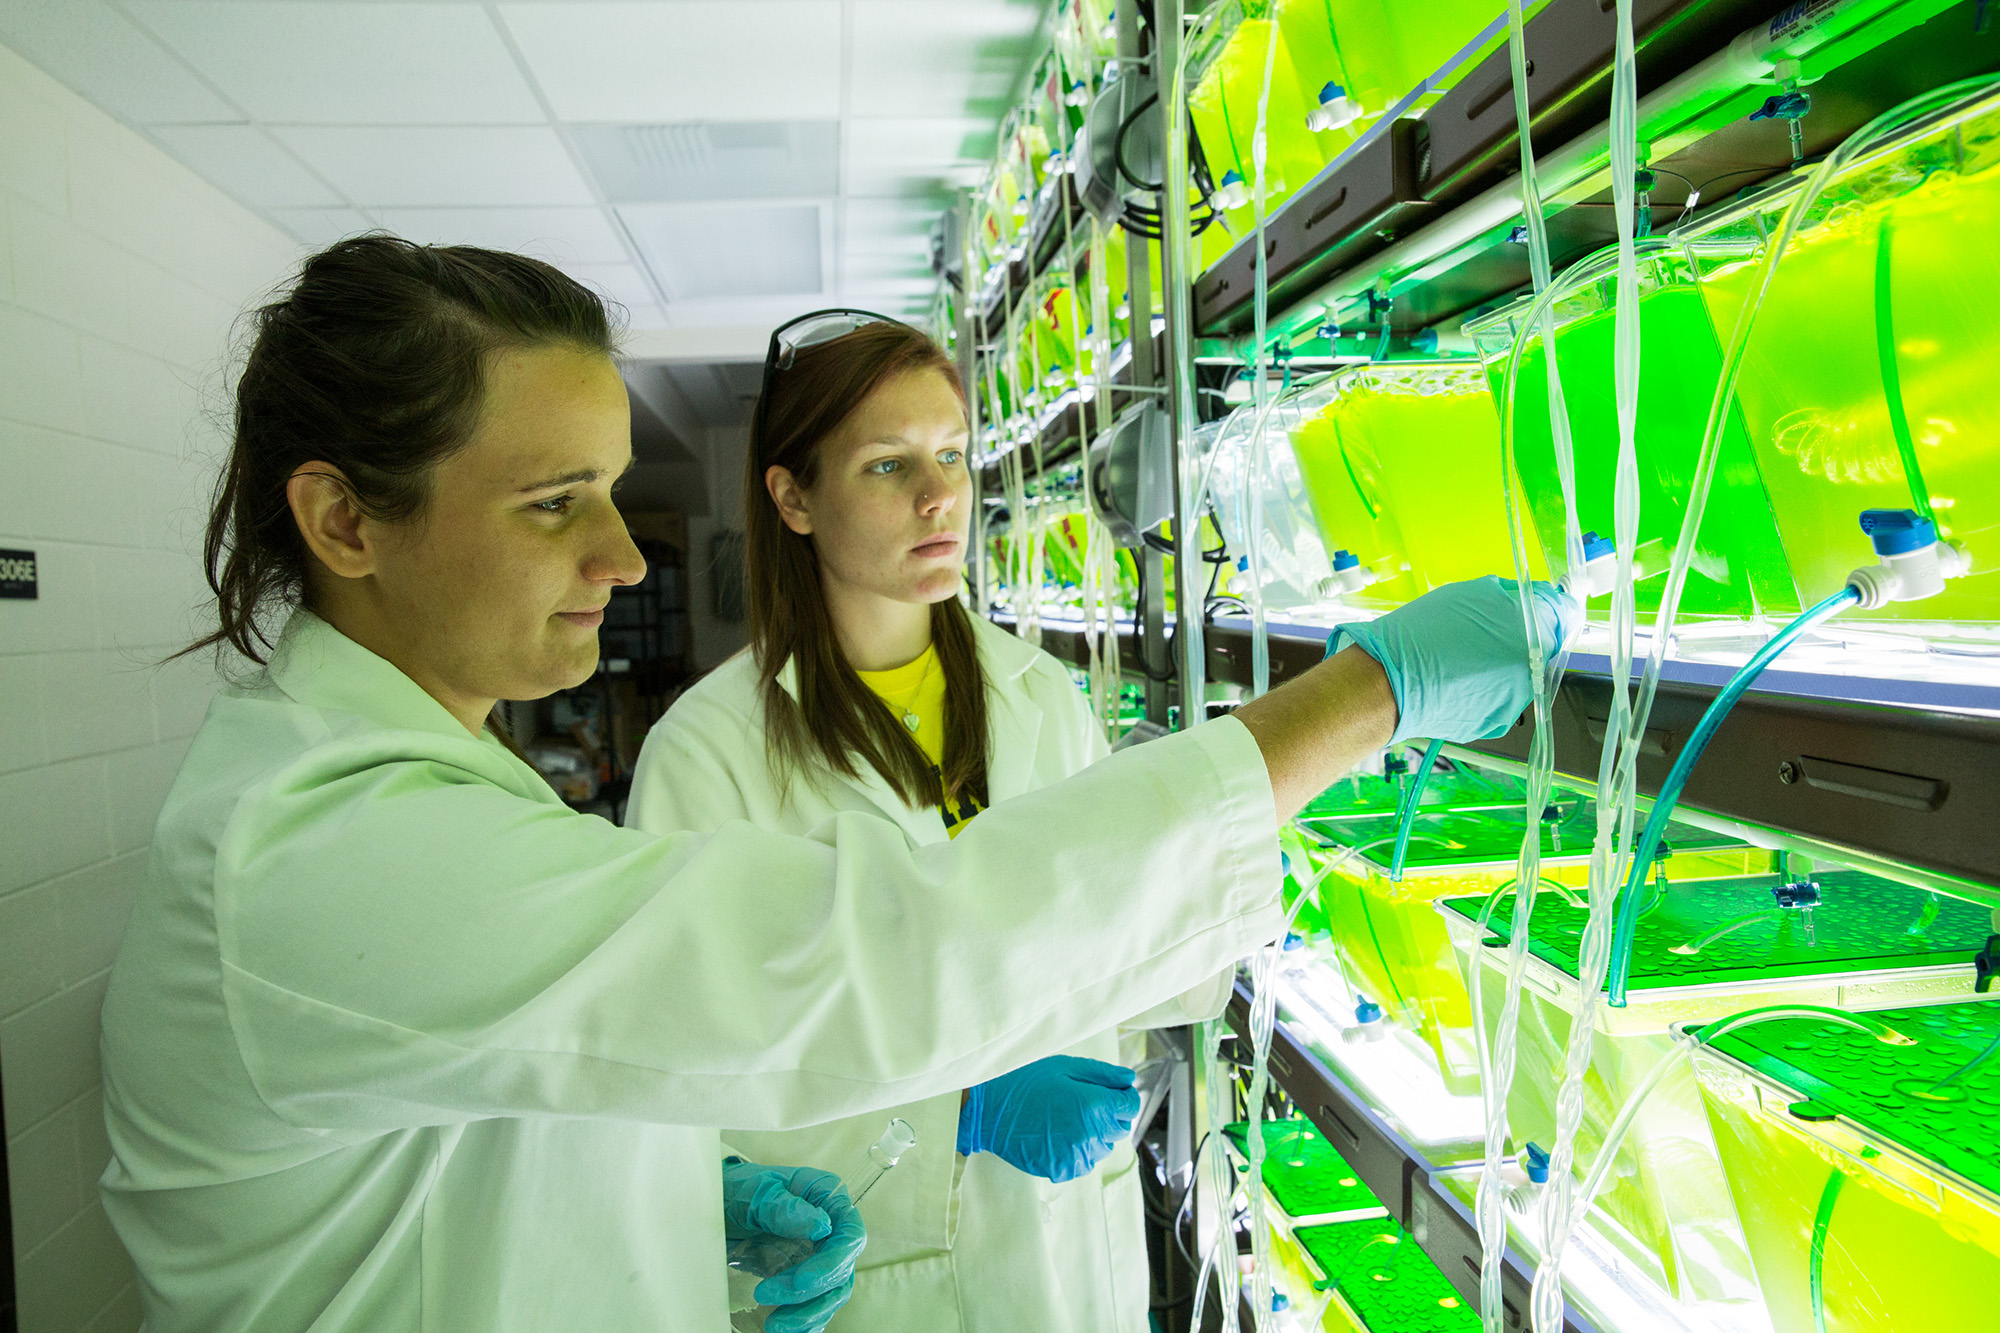 Two University of Michigan undergraduates sample algae from an experiment that will determine if species diversity can enhance the production of algal biofuels. Image credit: Bradley J. Cardinale